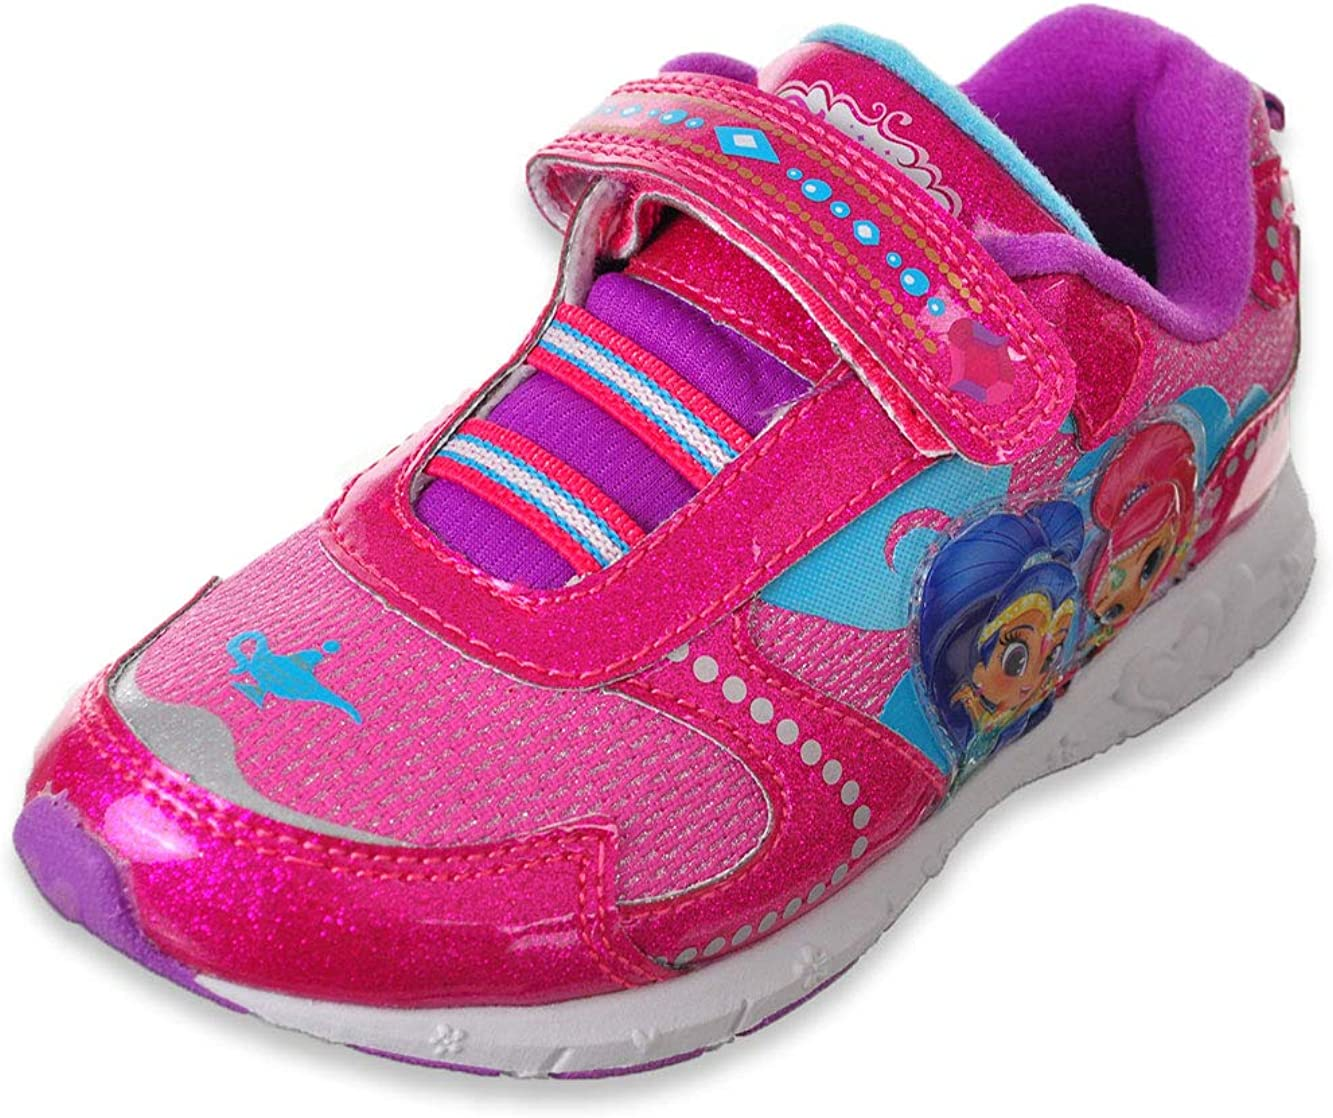 Josmo Shoes Shimmer and Shine Girls Dark Pink Light Up Sneaker - 7